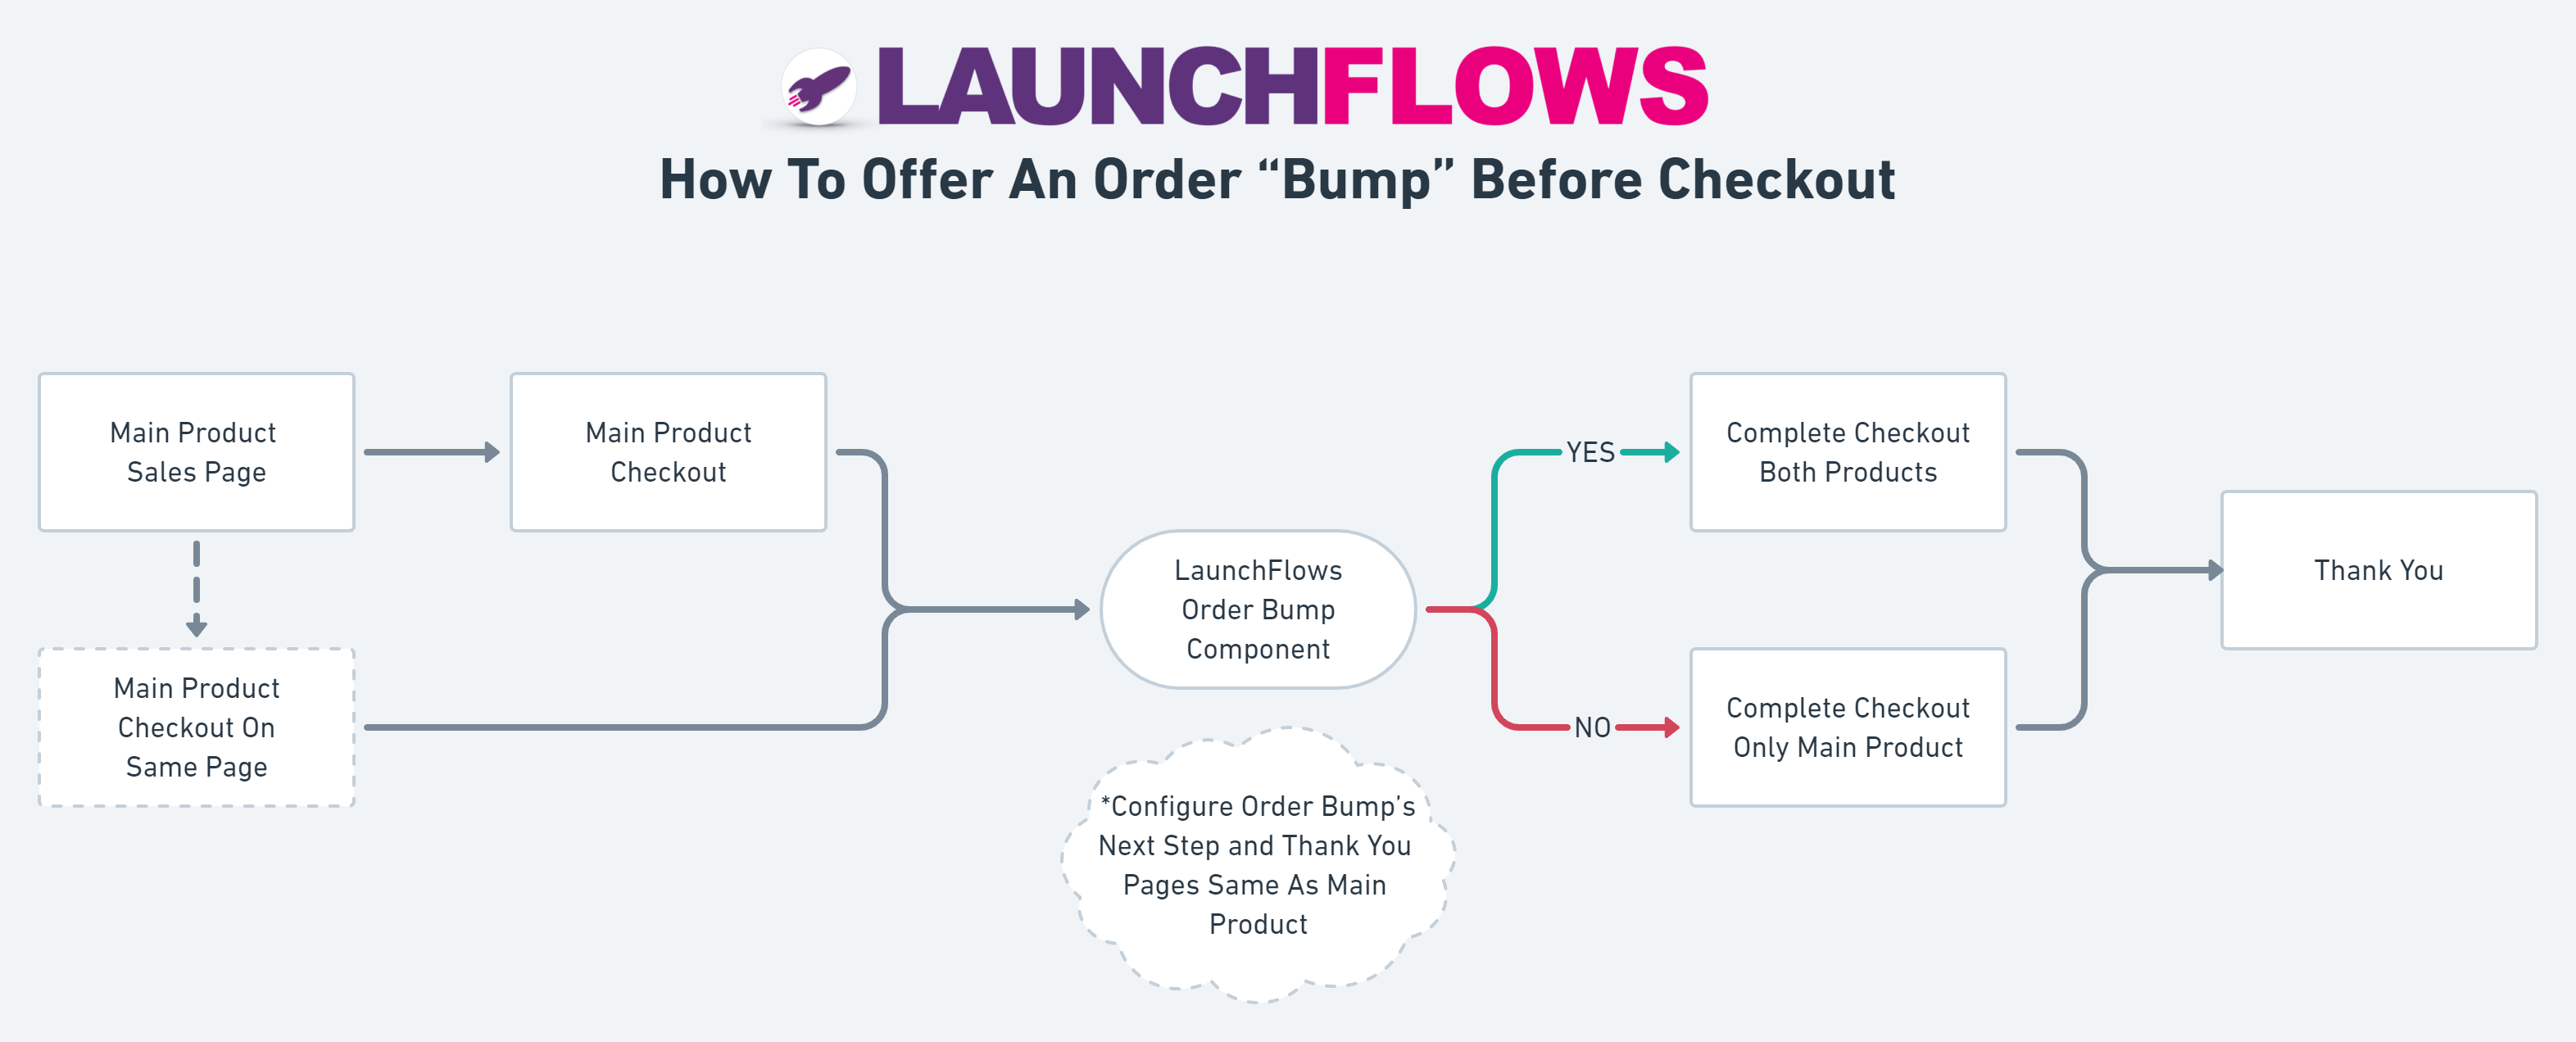 How To Offer An Order Bump Before Checkout Diagram